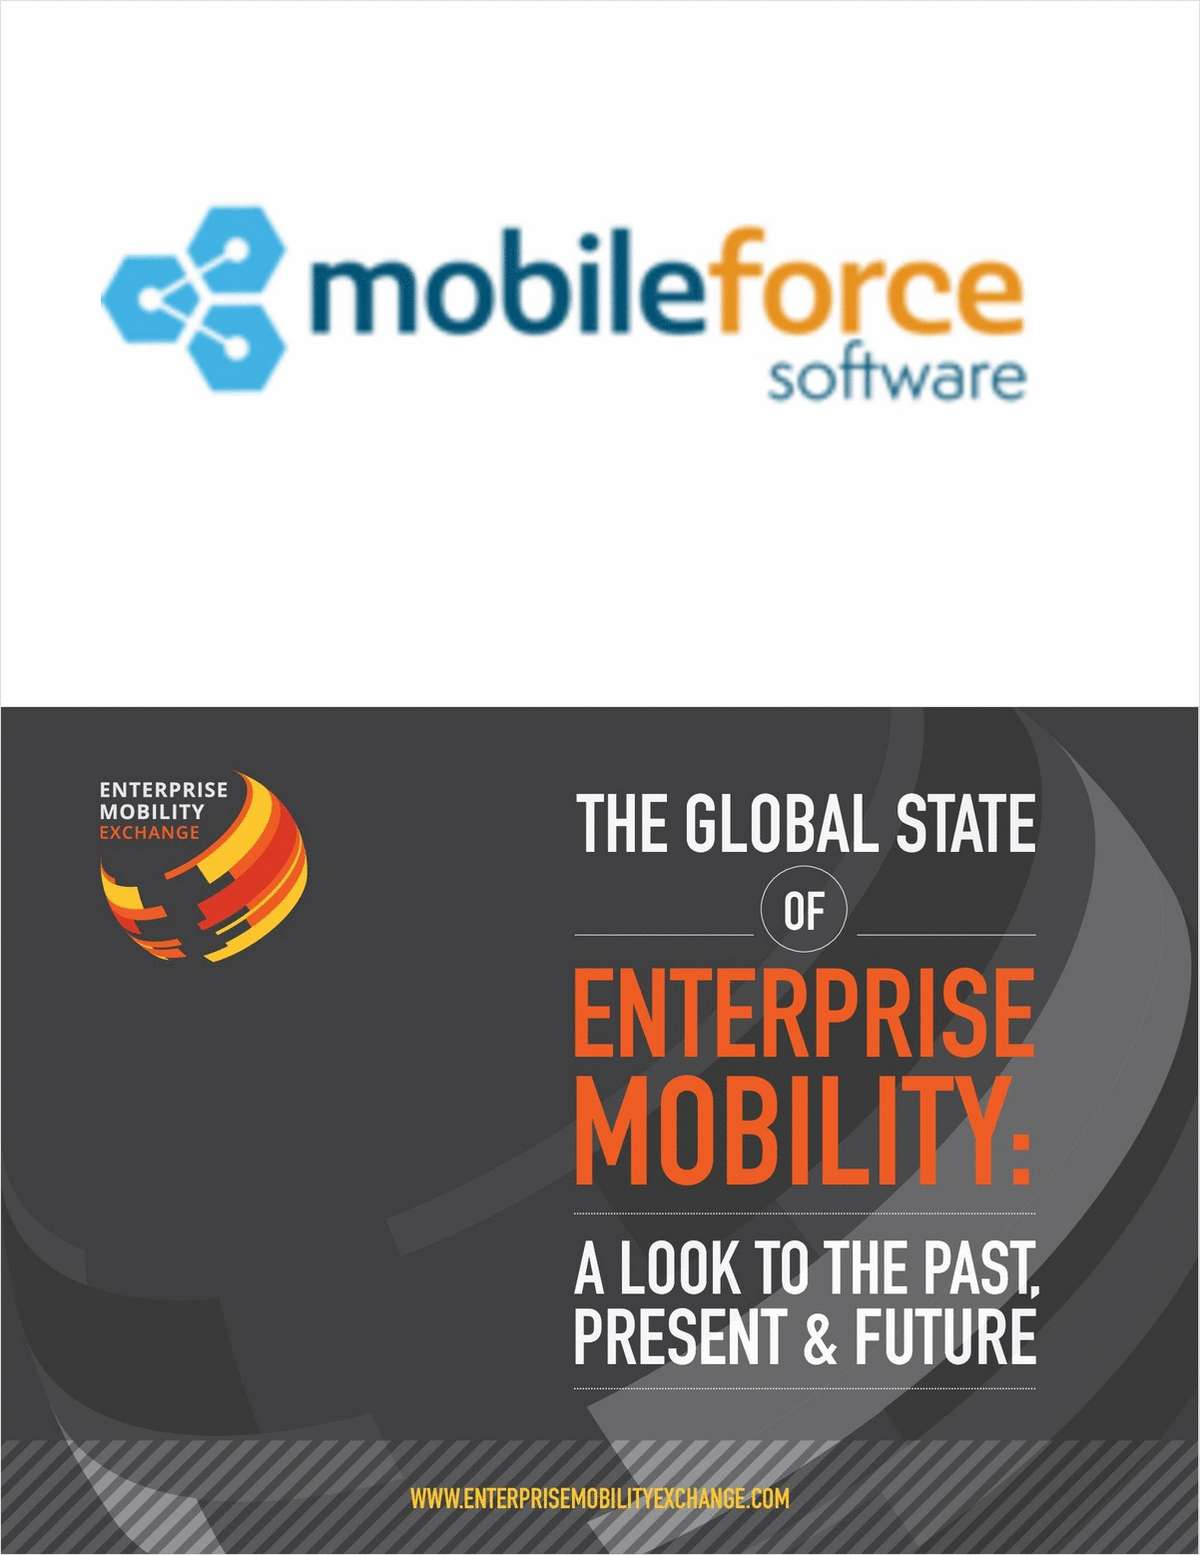 The Global State of Enterprise Mobility